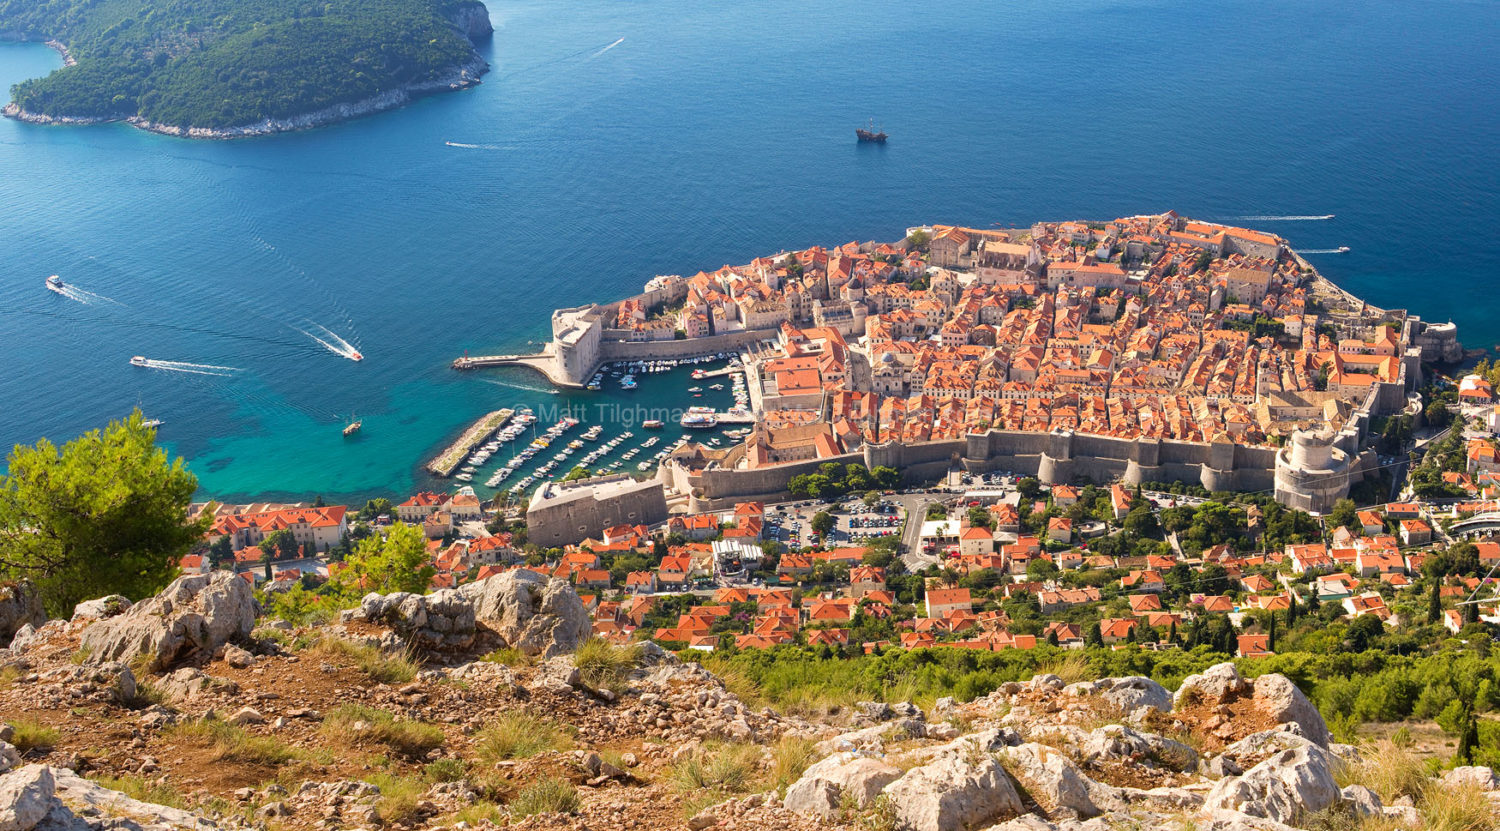 Fine art stock landscape photograph from Dubrovnik, Croatia. The ancient town and the turquoise Adriatic Sea shine side by side on the beautiful Dalmatian Coast.